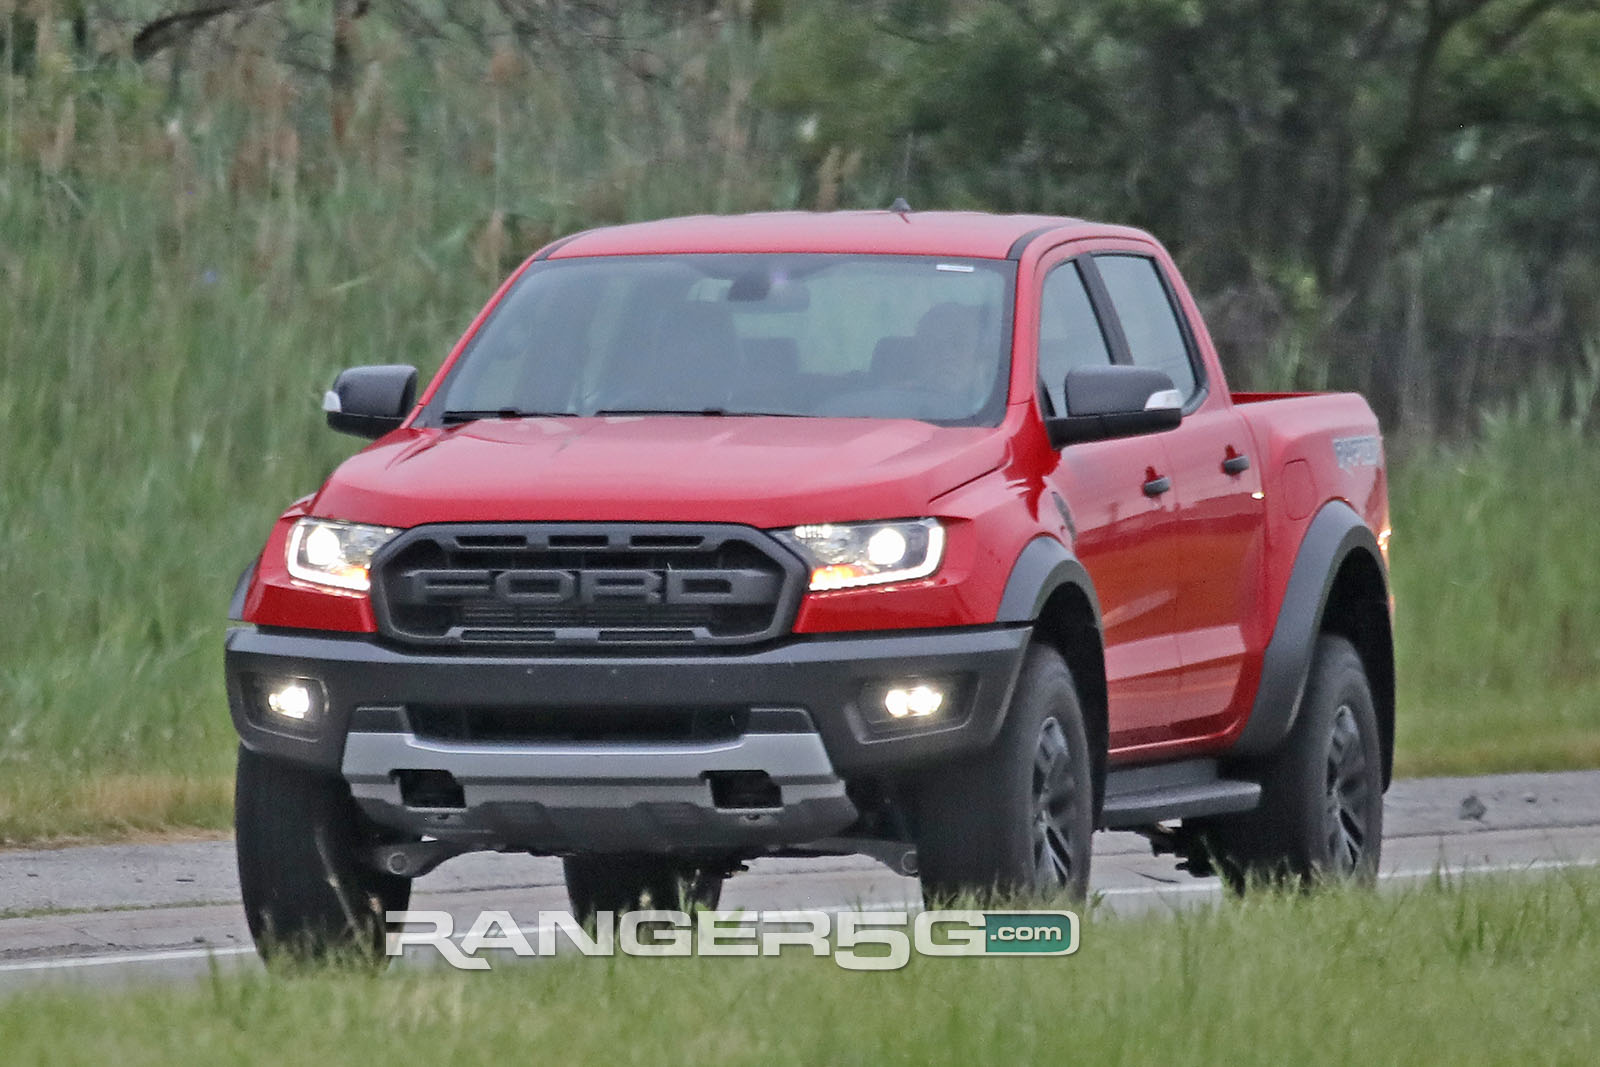 Spied: LHD Ranger Raptor Testing in US! Video + Pics ...